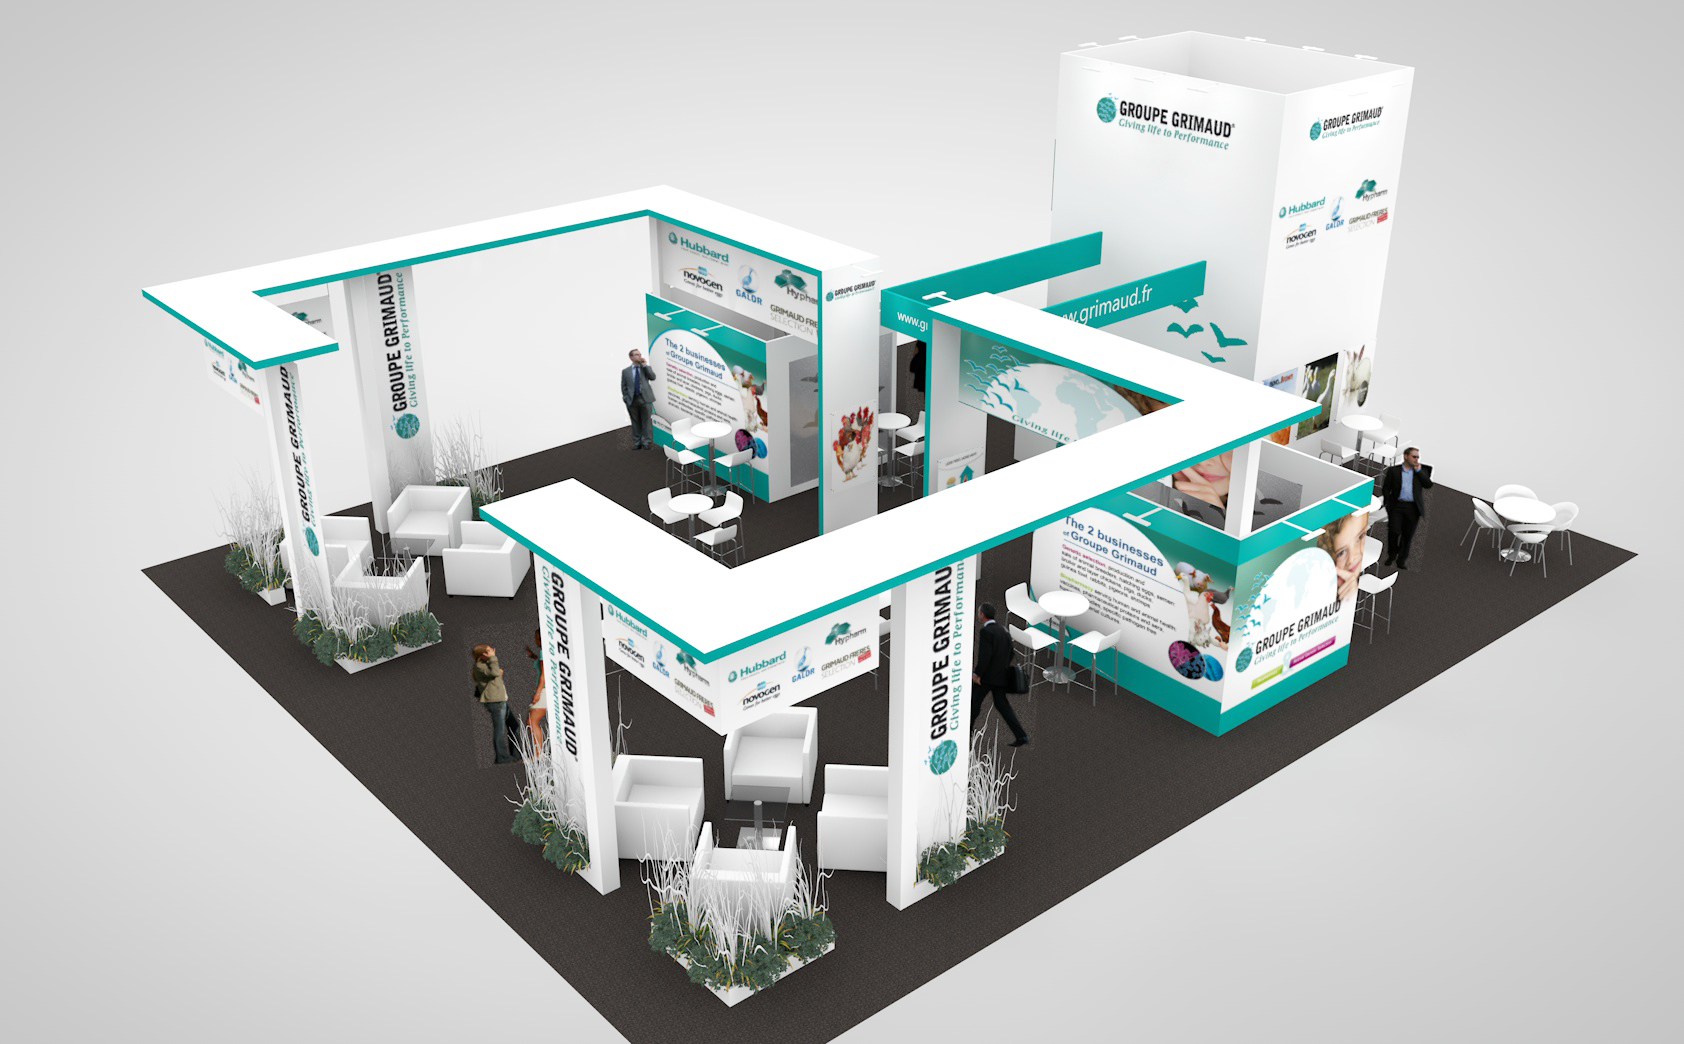 Exhibition stand design for Groupe Grimaud's European Exhibition Programme